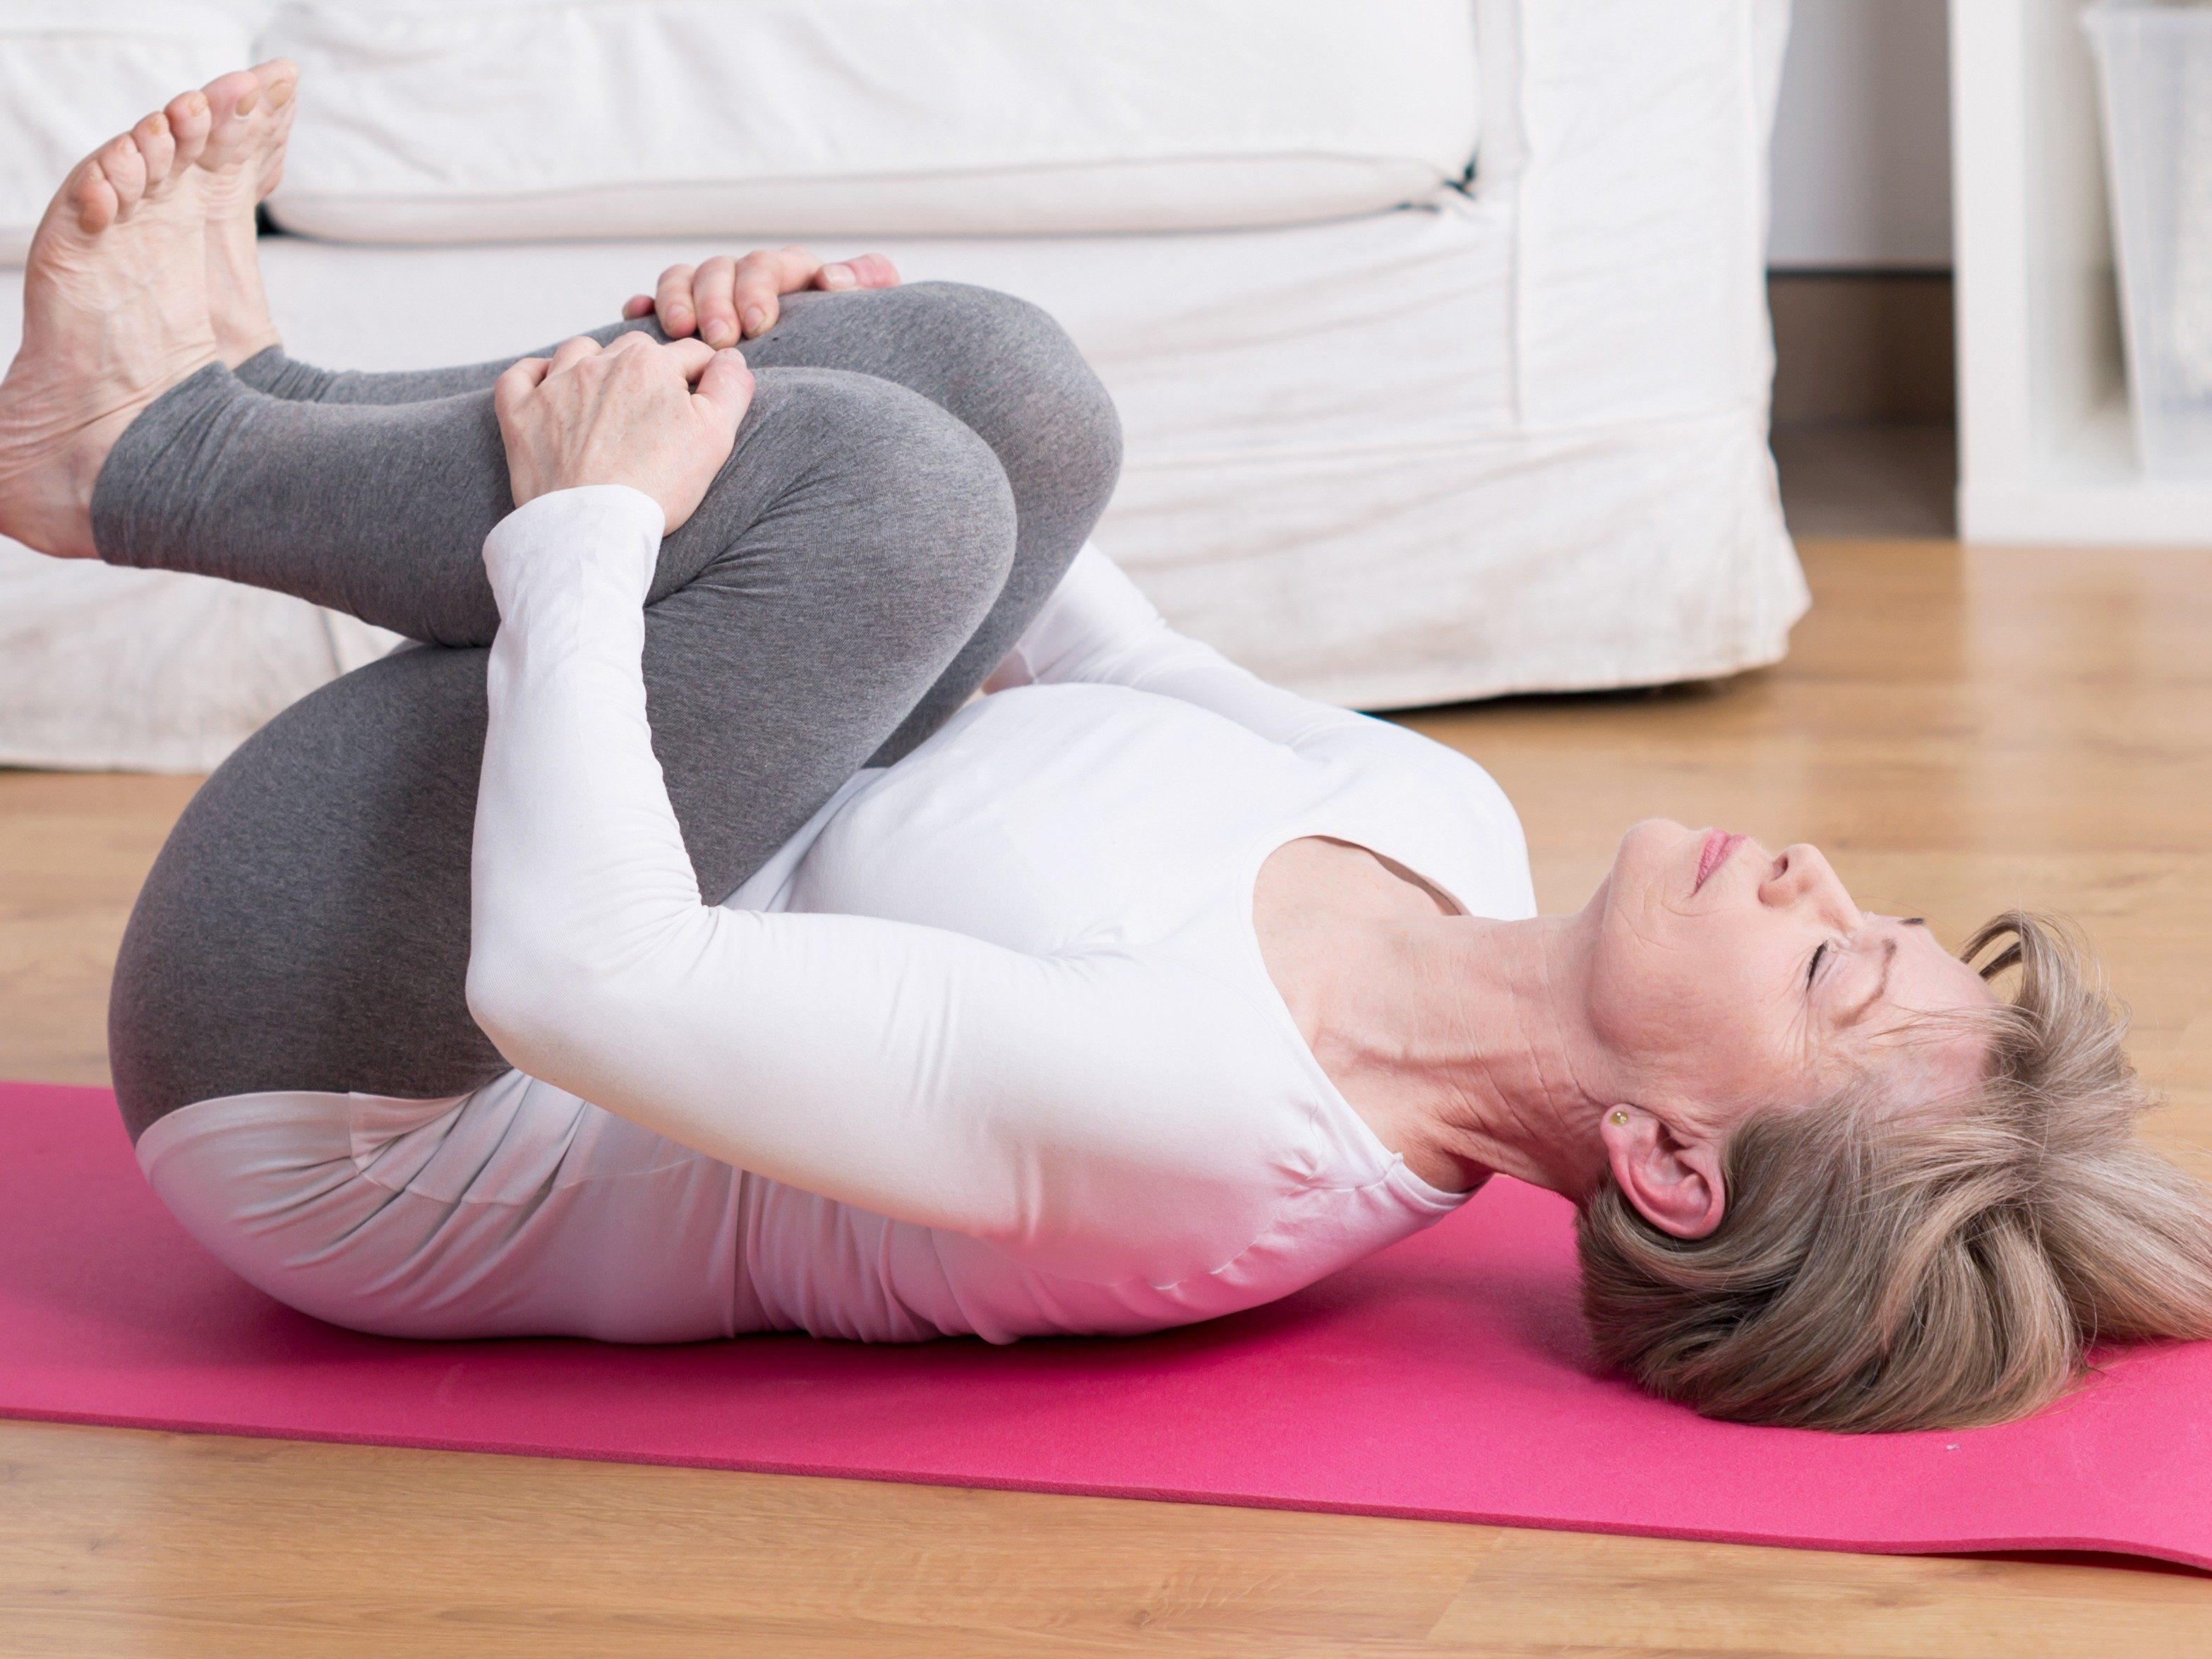 6 Exercises to Relieve Back Pain